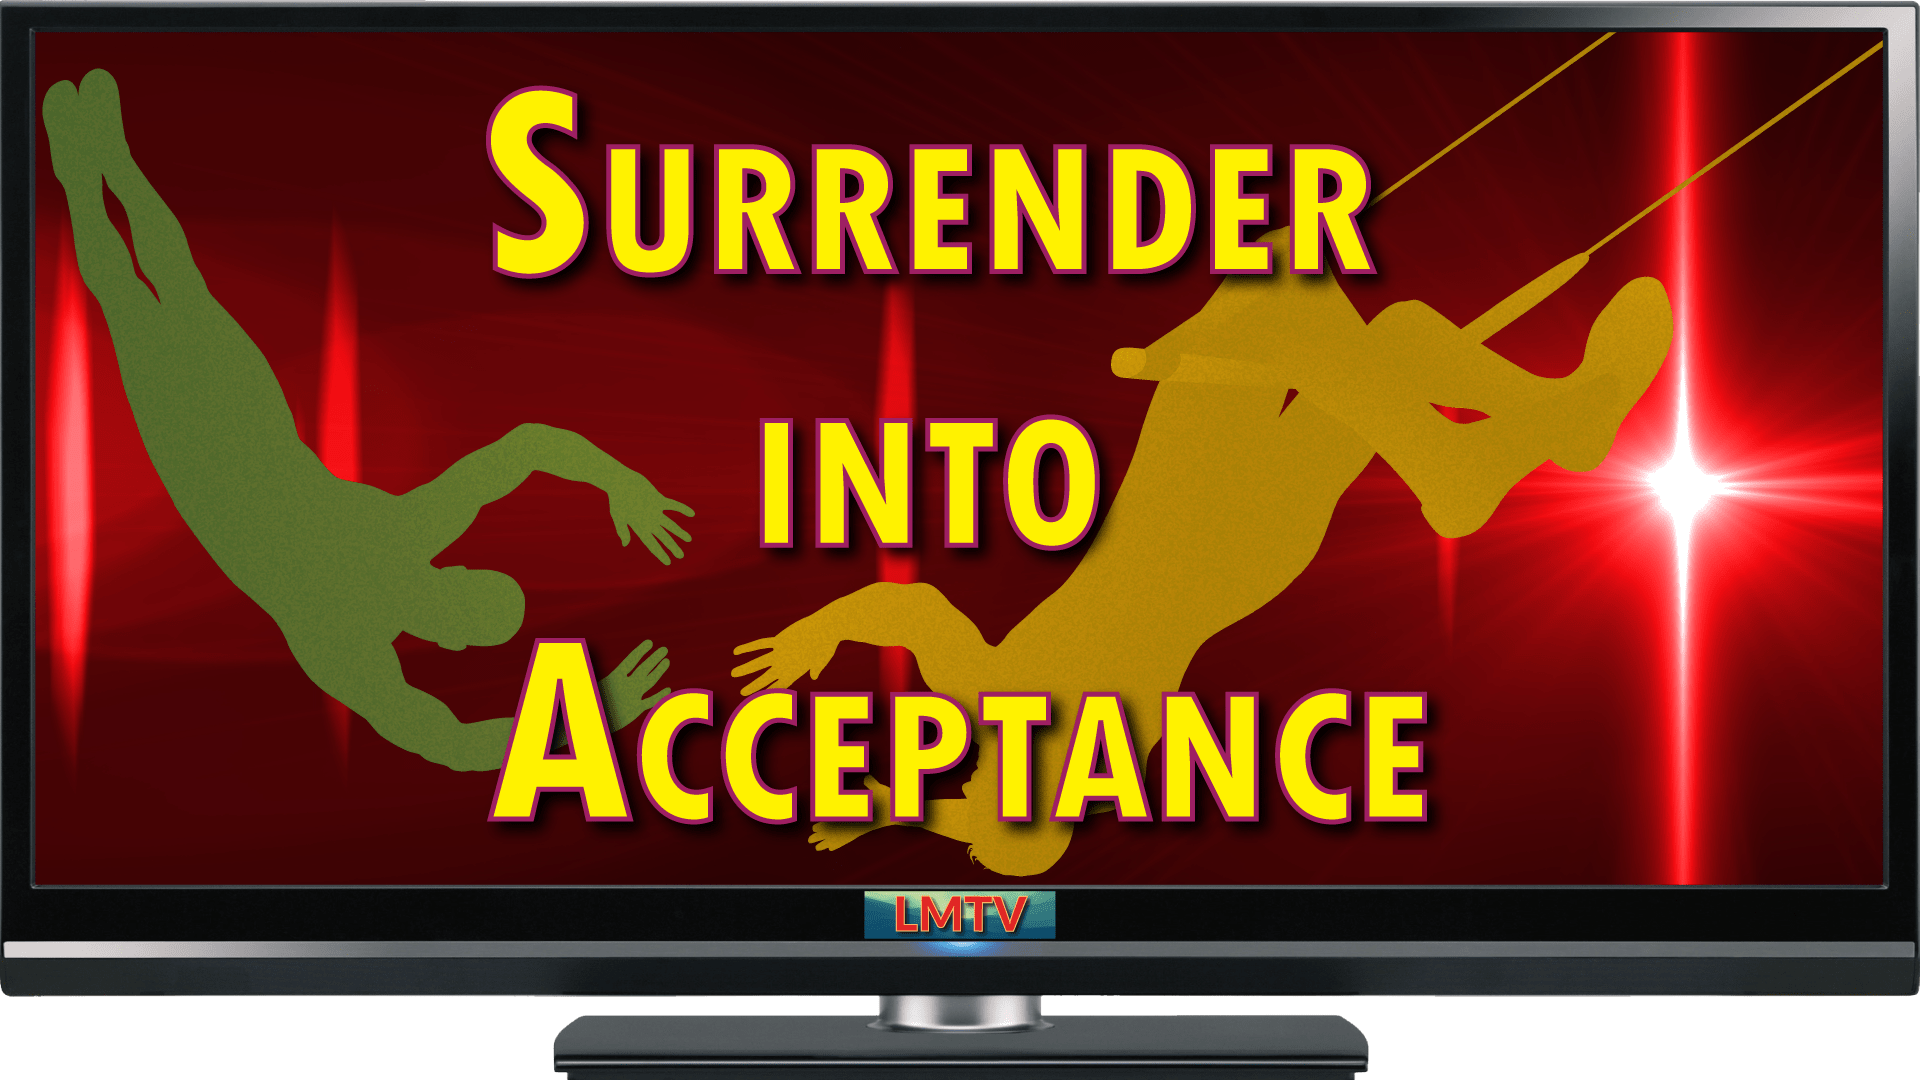 Surrender into Acceptance